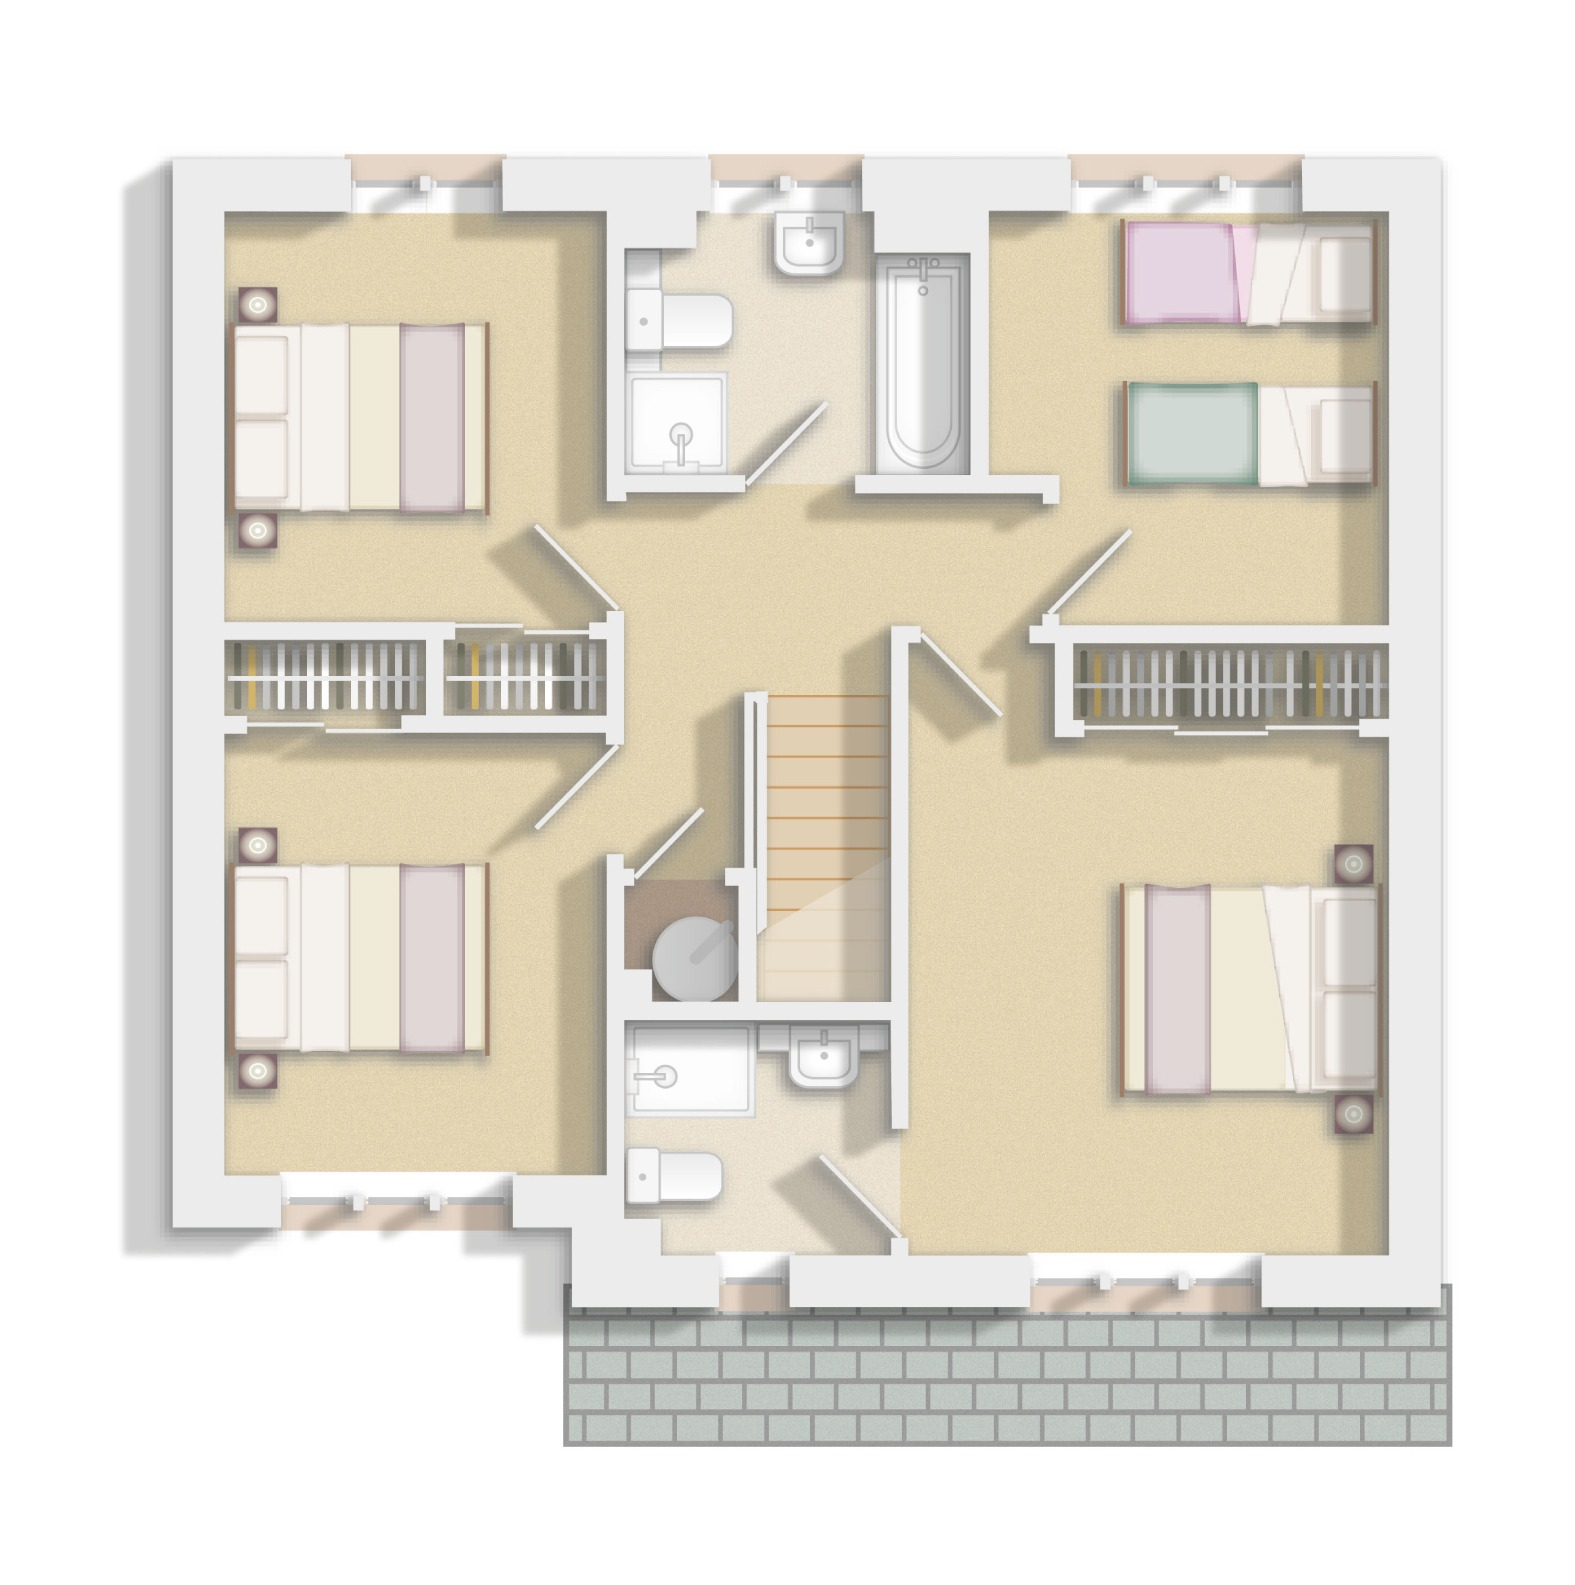 Upper Floor Floorplan